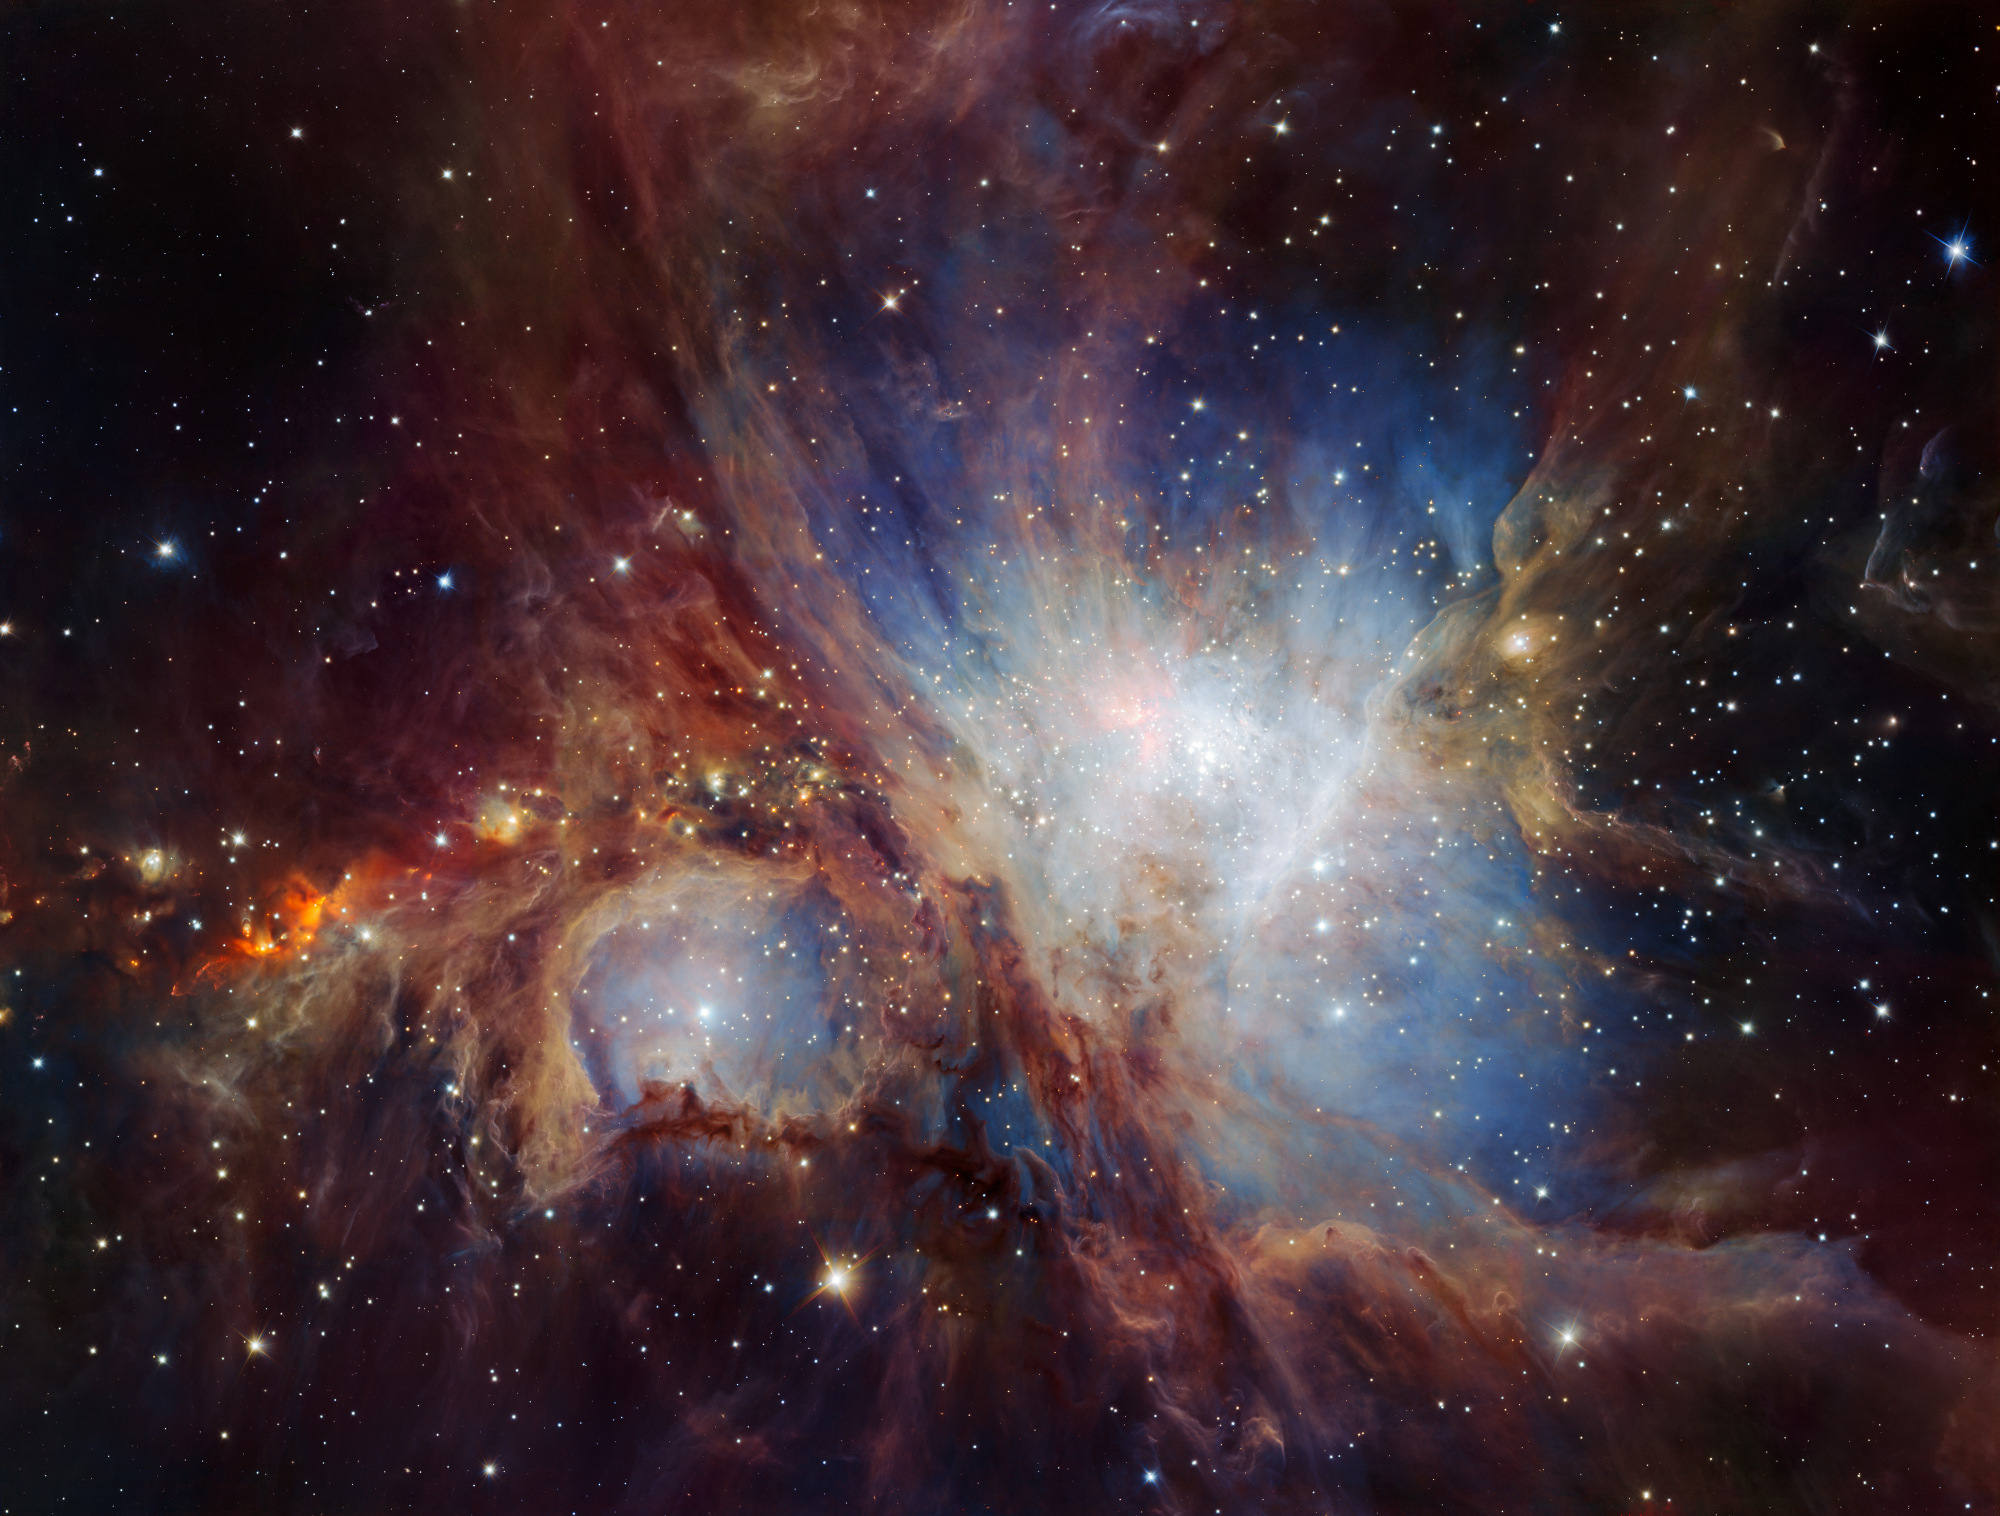 This spectacular image of the Orion Nebula star-formation region was obtained from multiple exposures using the HAWK-I infrared camera on ESO's Very Large Telescope in Chile. Otherwise known as Messier42, the OrionNebula is about 1,350light-years from Earth. This is the deepest view ever of this region and reveals more very faint planetary-mass objects than expected. Click the image for a large-scale version. Image credit: ESO/H.Drass et al.